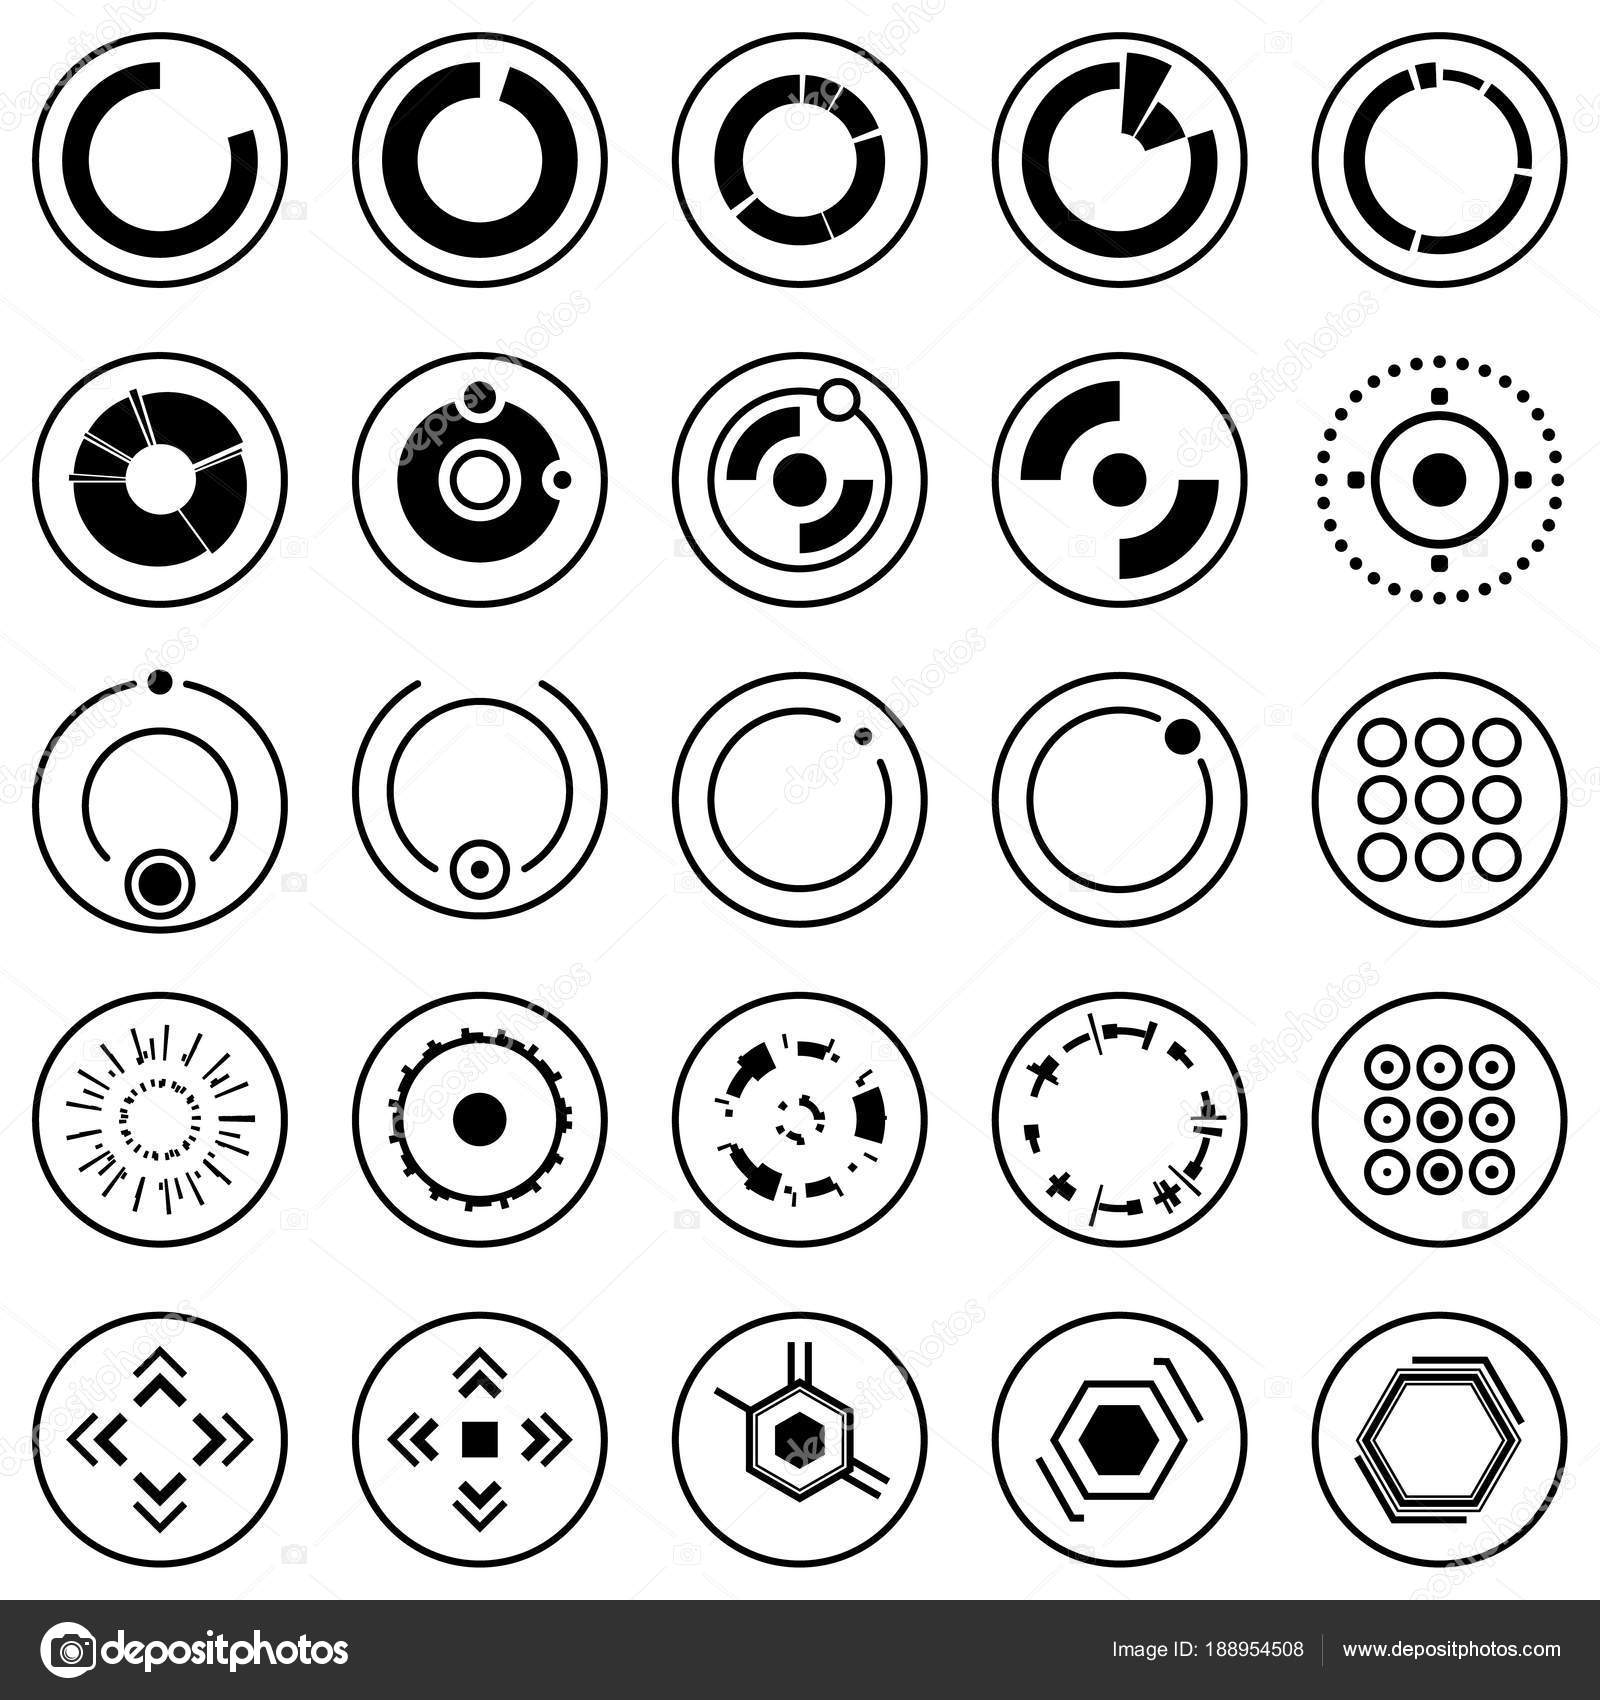 Futuristic Icons Set Of Infographic Elements And Symbols For User